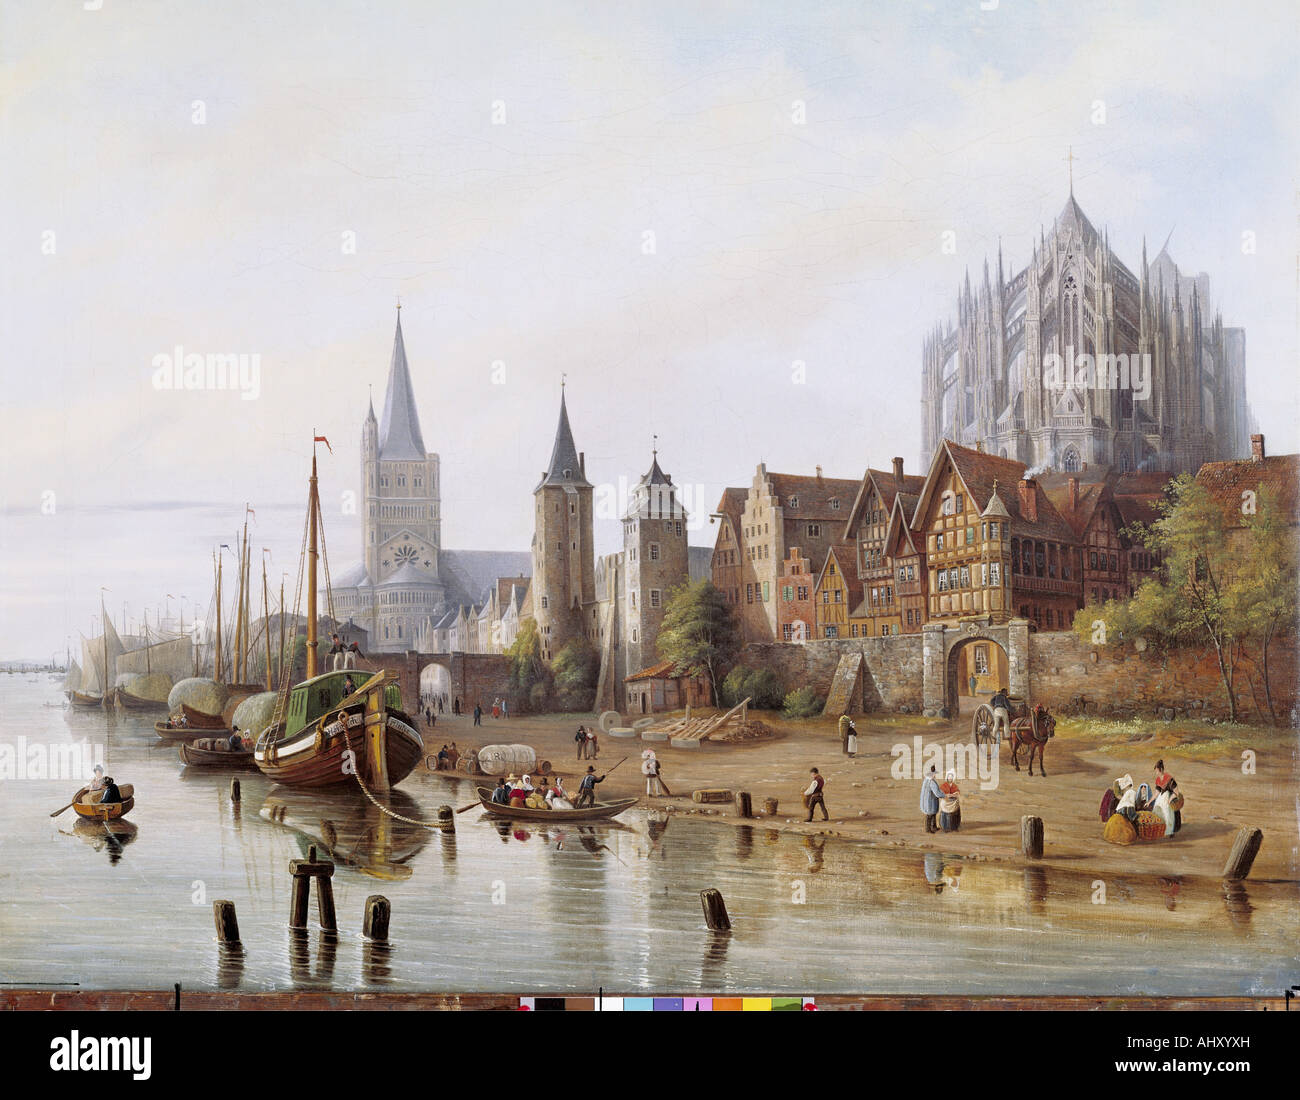 'Fine Arts, Hintze, Johann Heinrich, (1800 - 1862), peinture, 'Rheinufer bei Köln', ('Banque Photo Stock